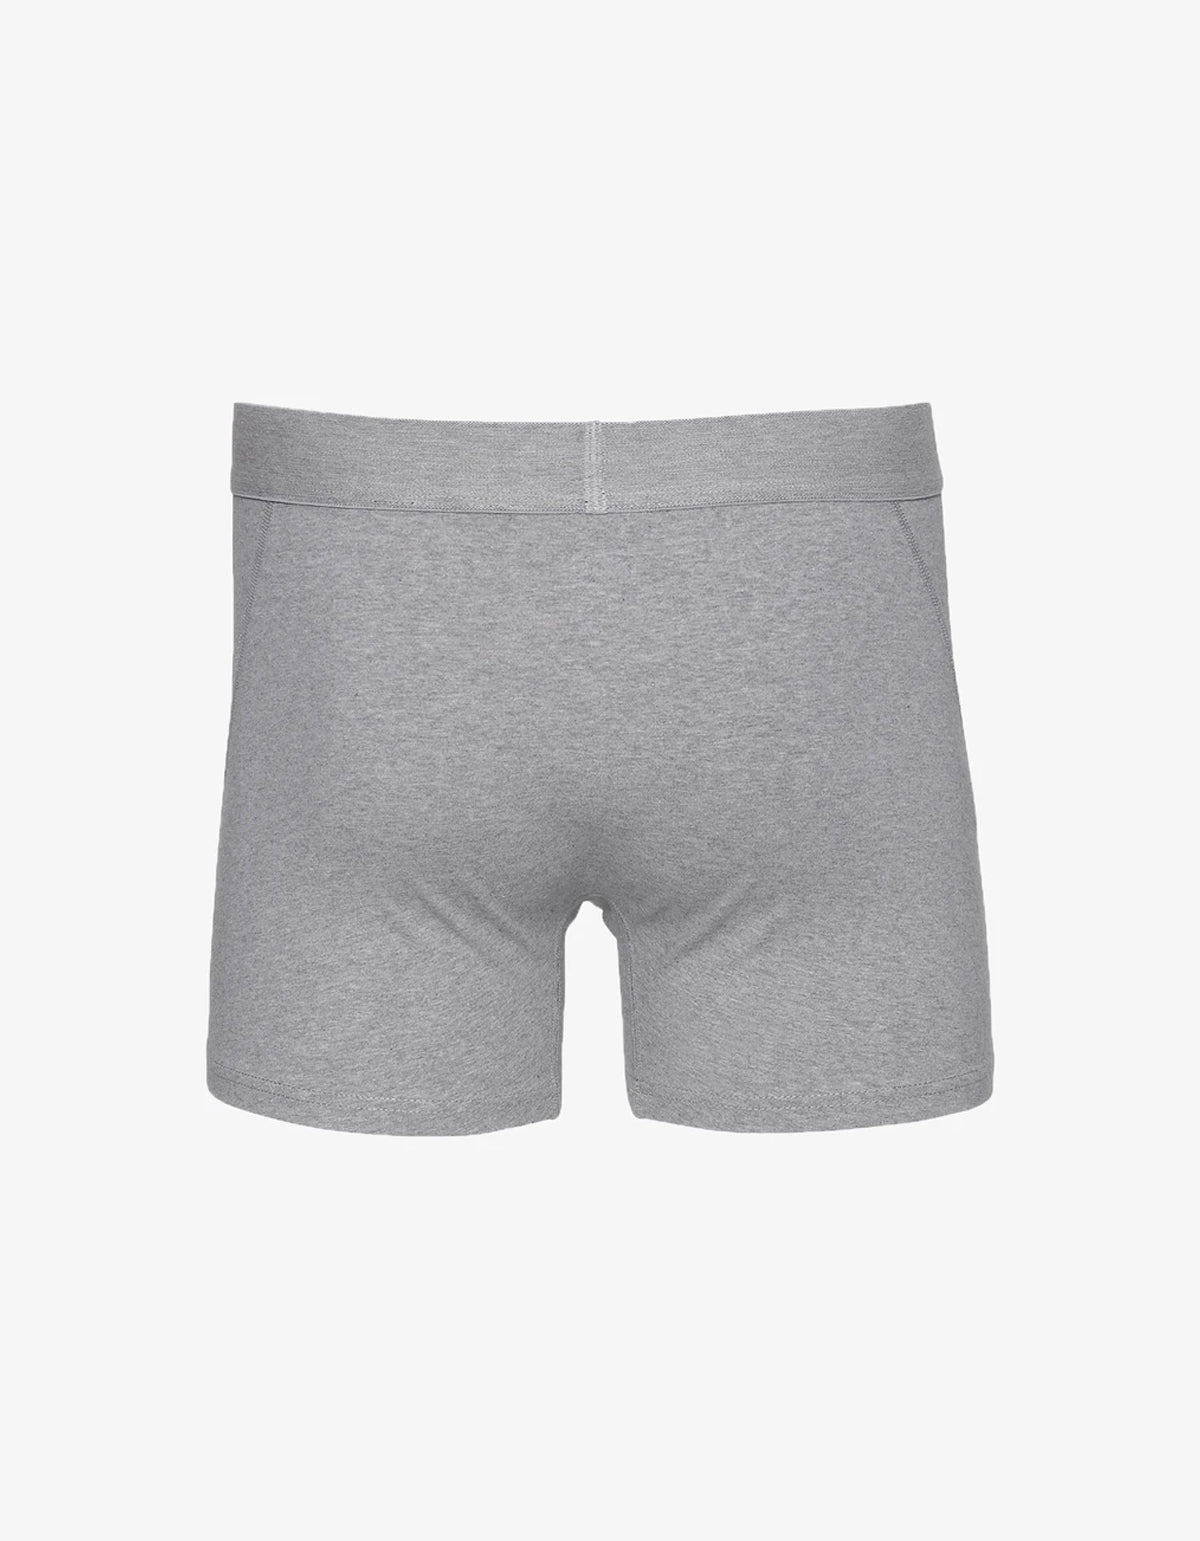 Colorful Standard Classic Organic Boxer Briefs in Heather Grey